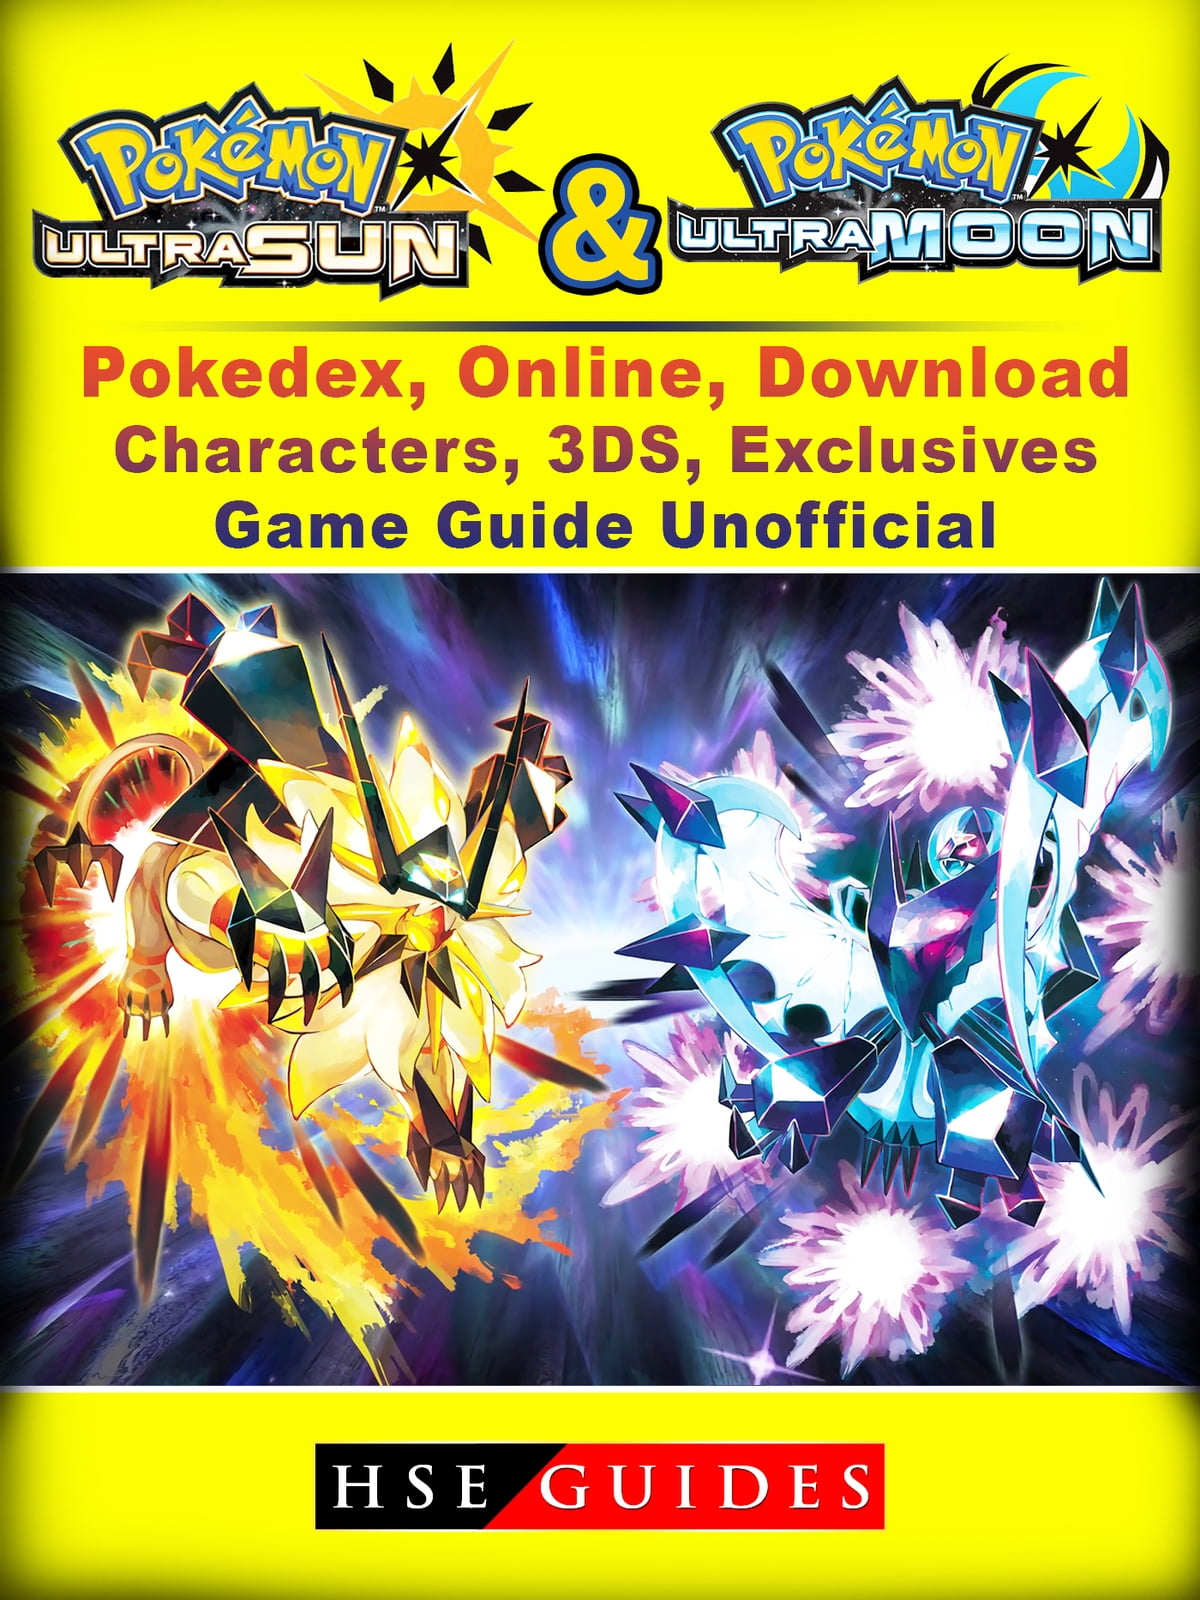 Pokemon Sun Moon Ultra Pokedex Online Download Characters 3ds Exclusives Game Guide Unofficial Ebook Por Hse Guides 9781387524556 Rakuten Kobo